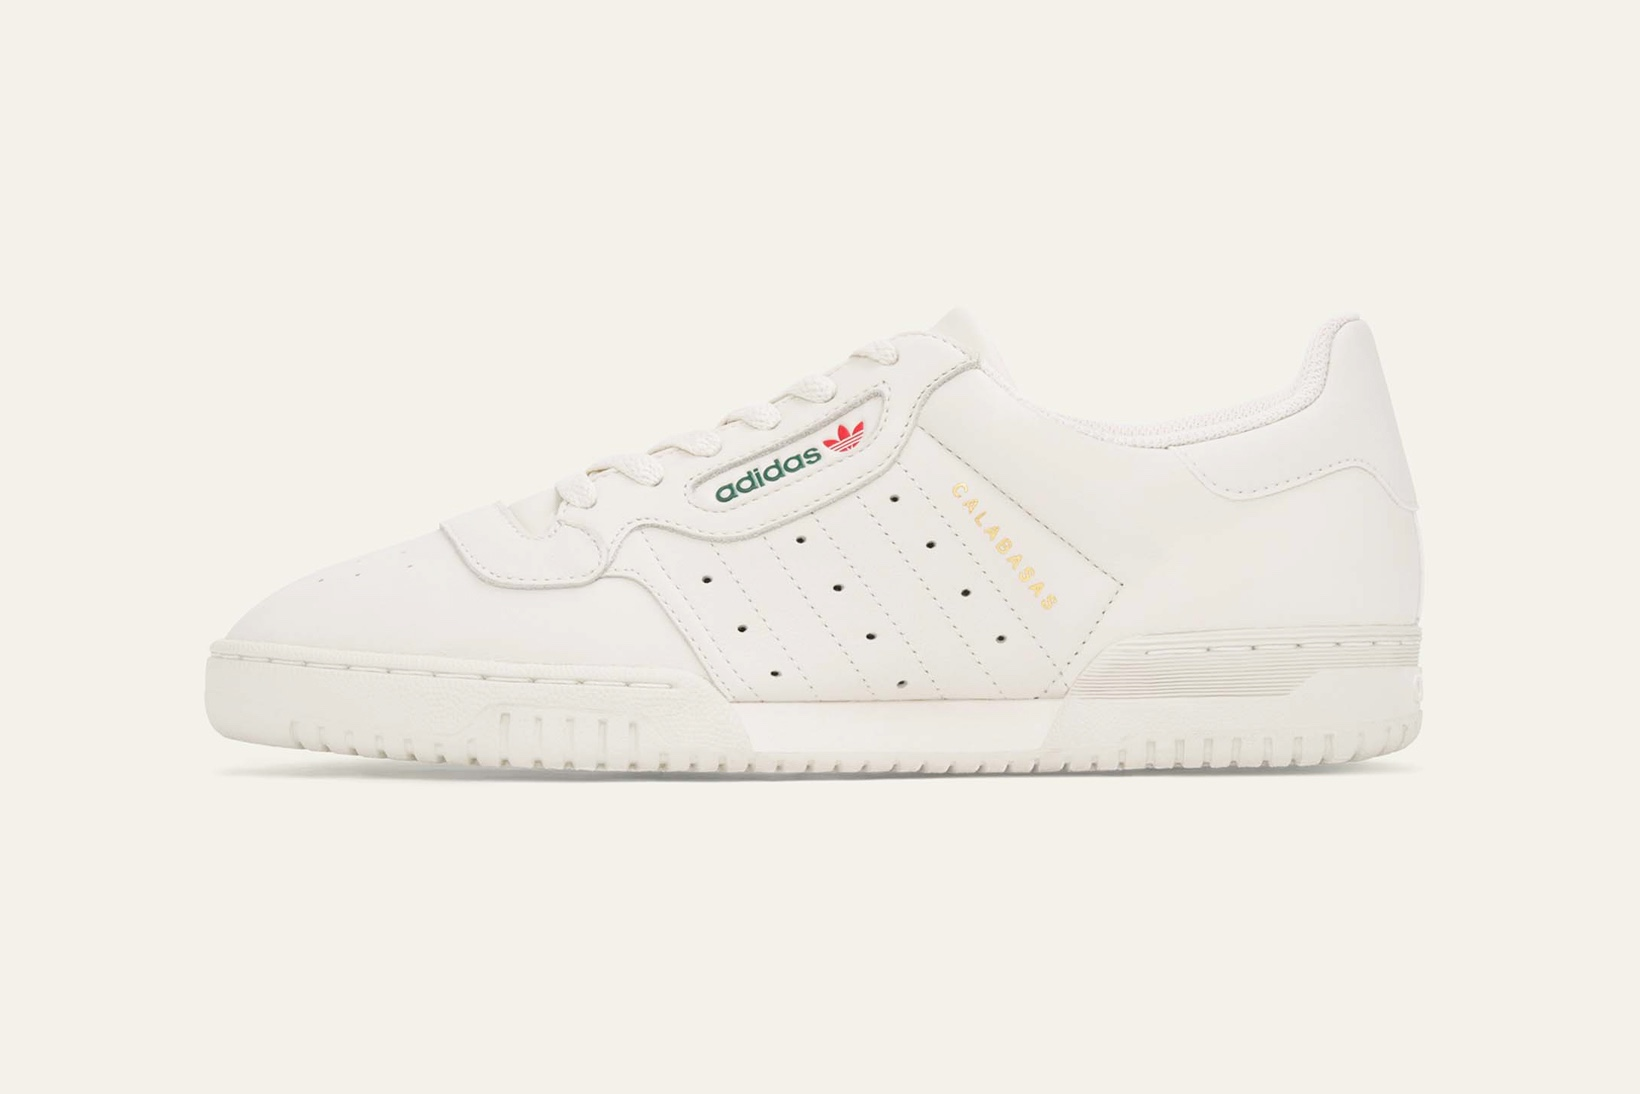 adidas Originals YEEZY Powerphase